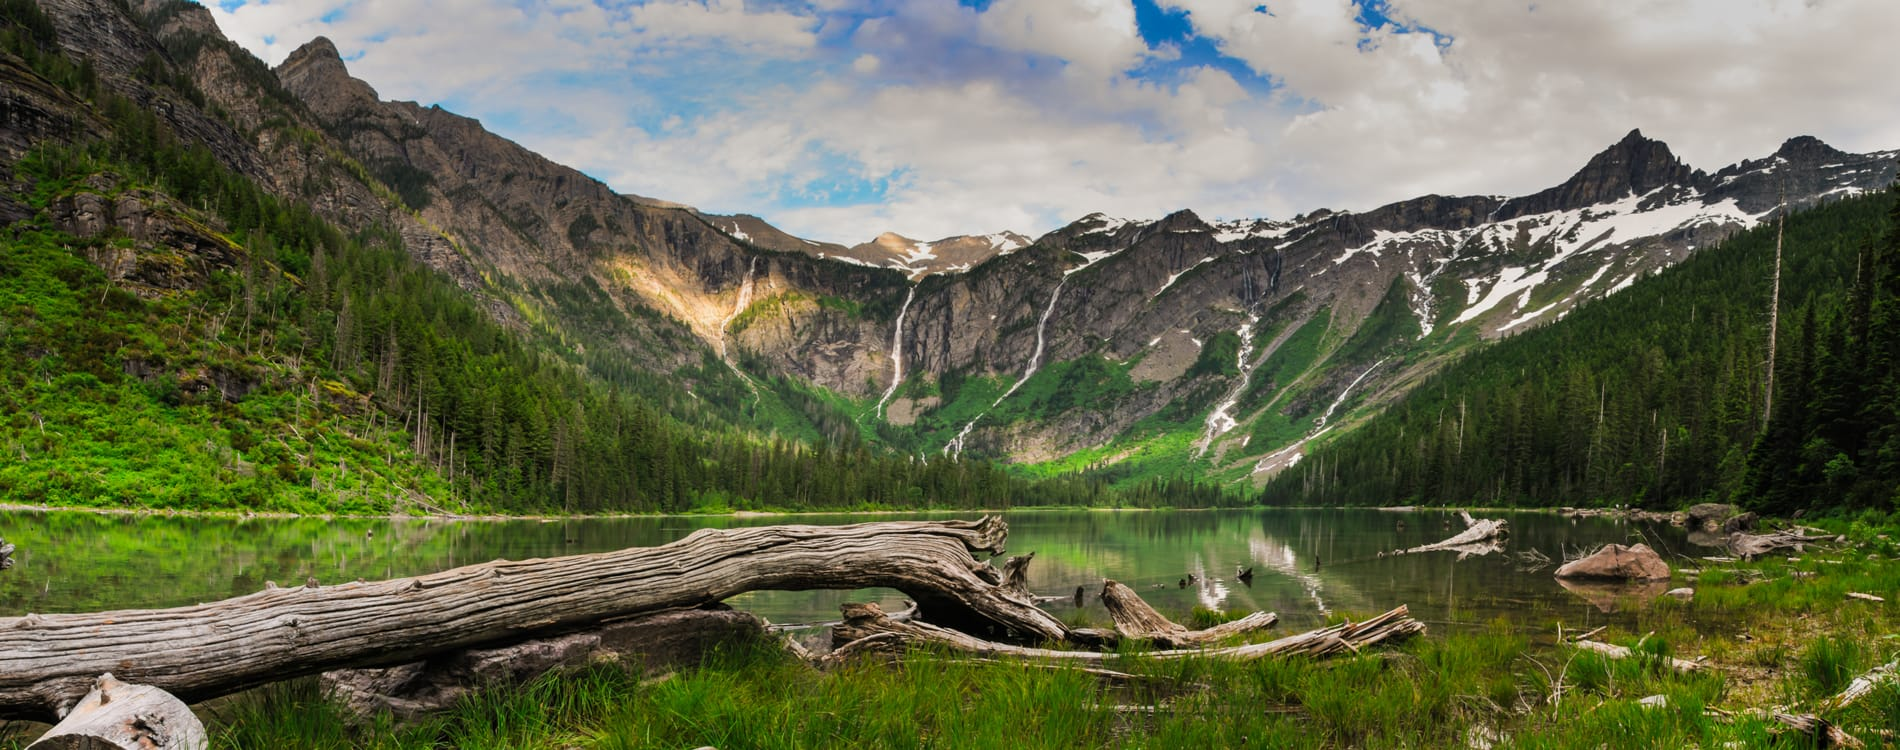 Glacier National Park - Avalanche Lake